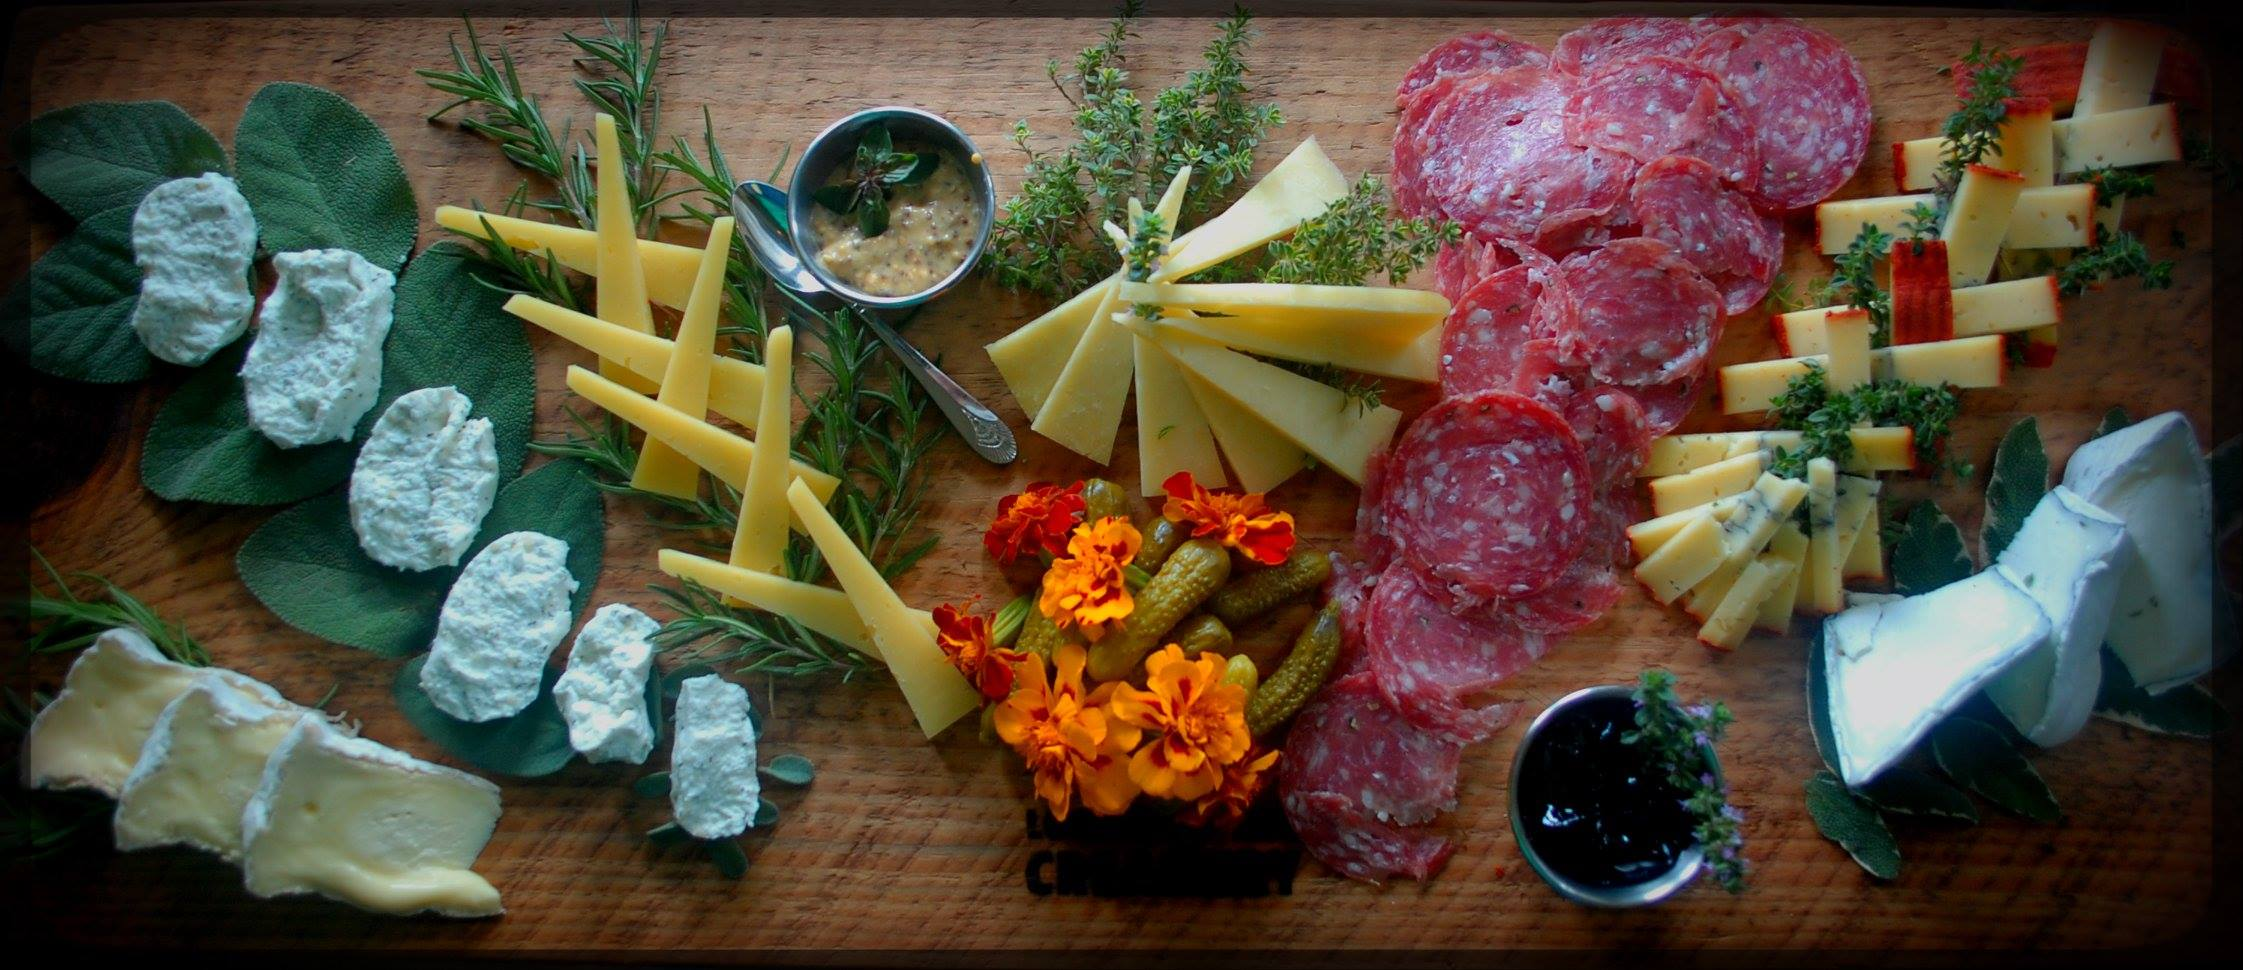 Looking Glass Creamery Cheese Plate